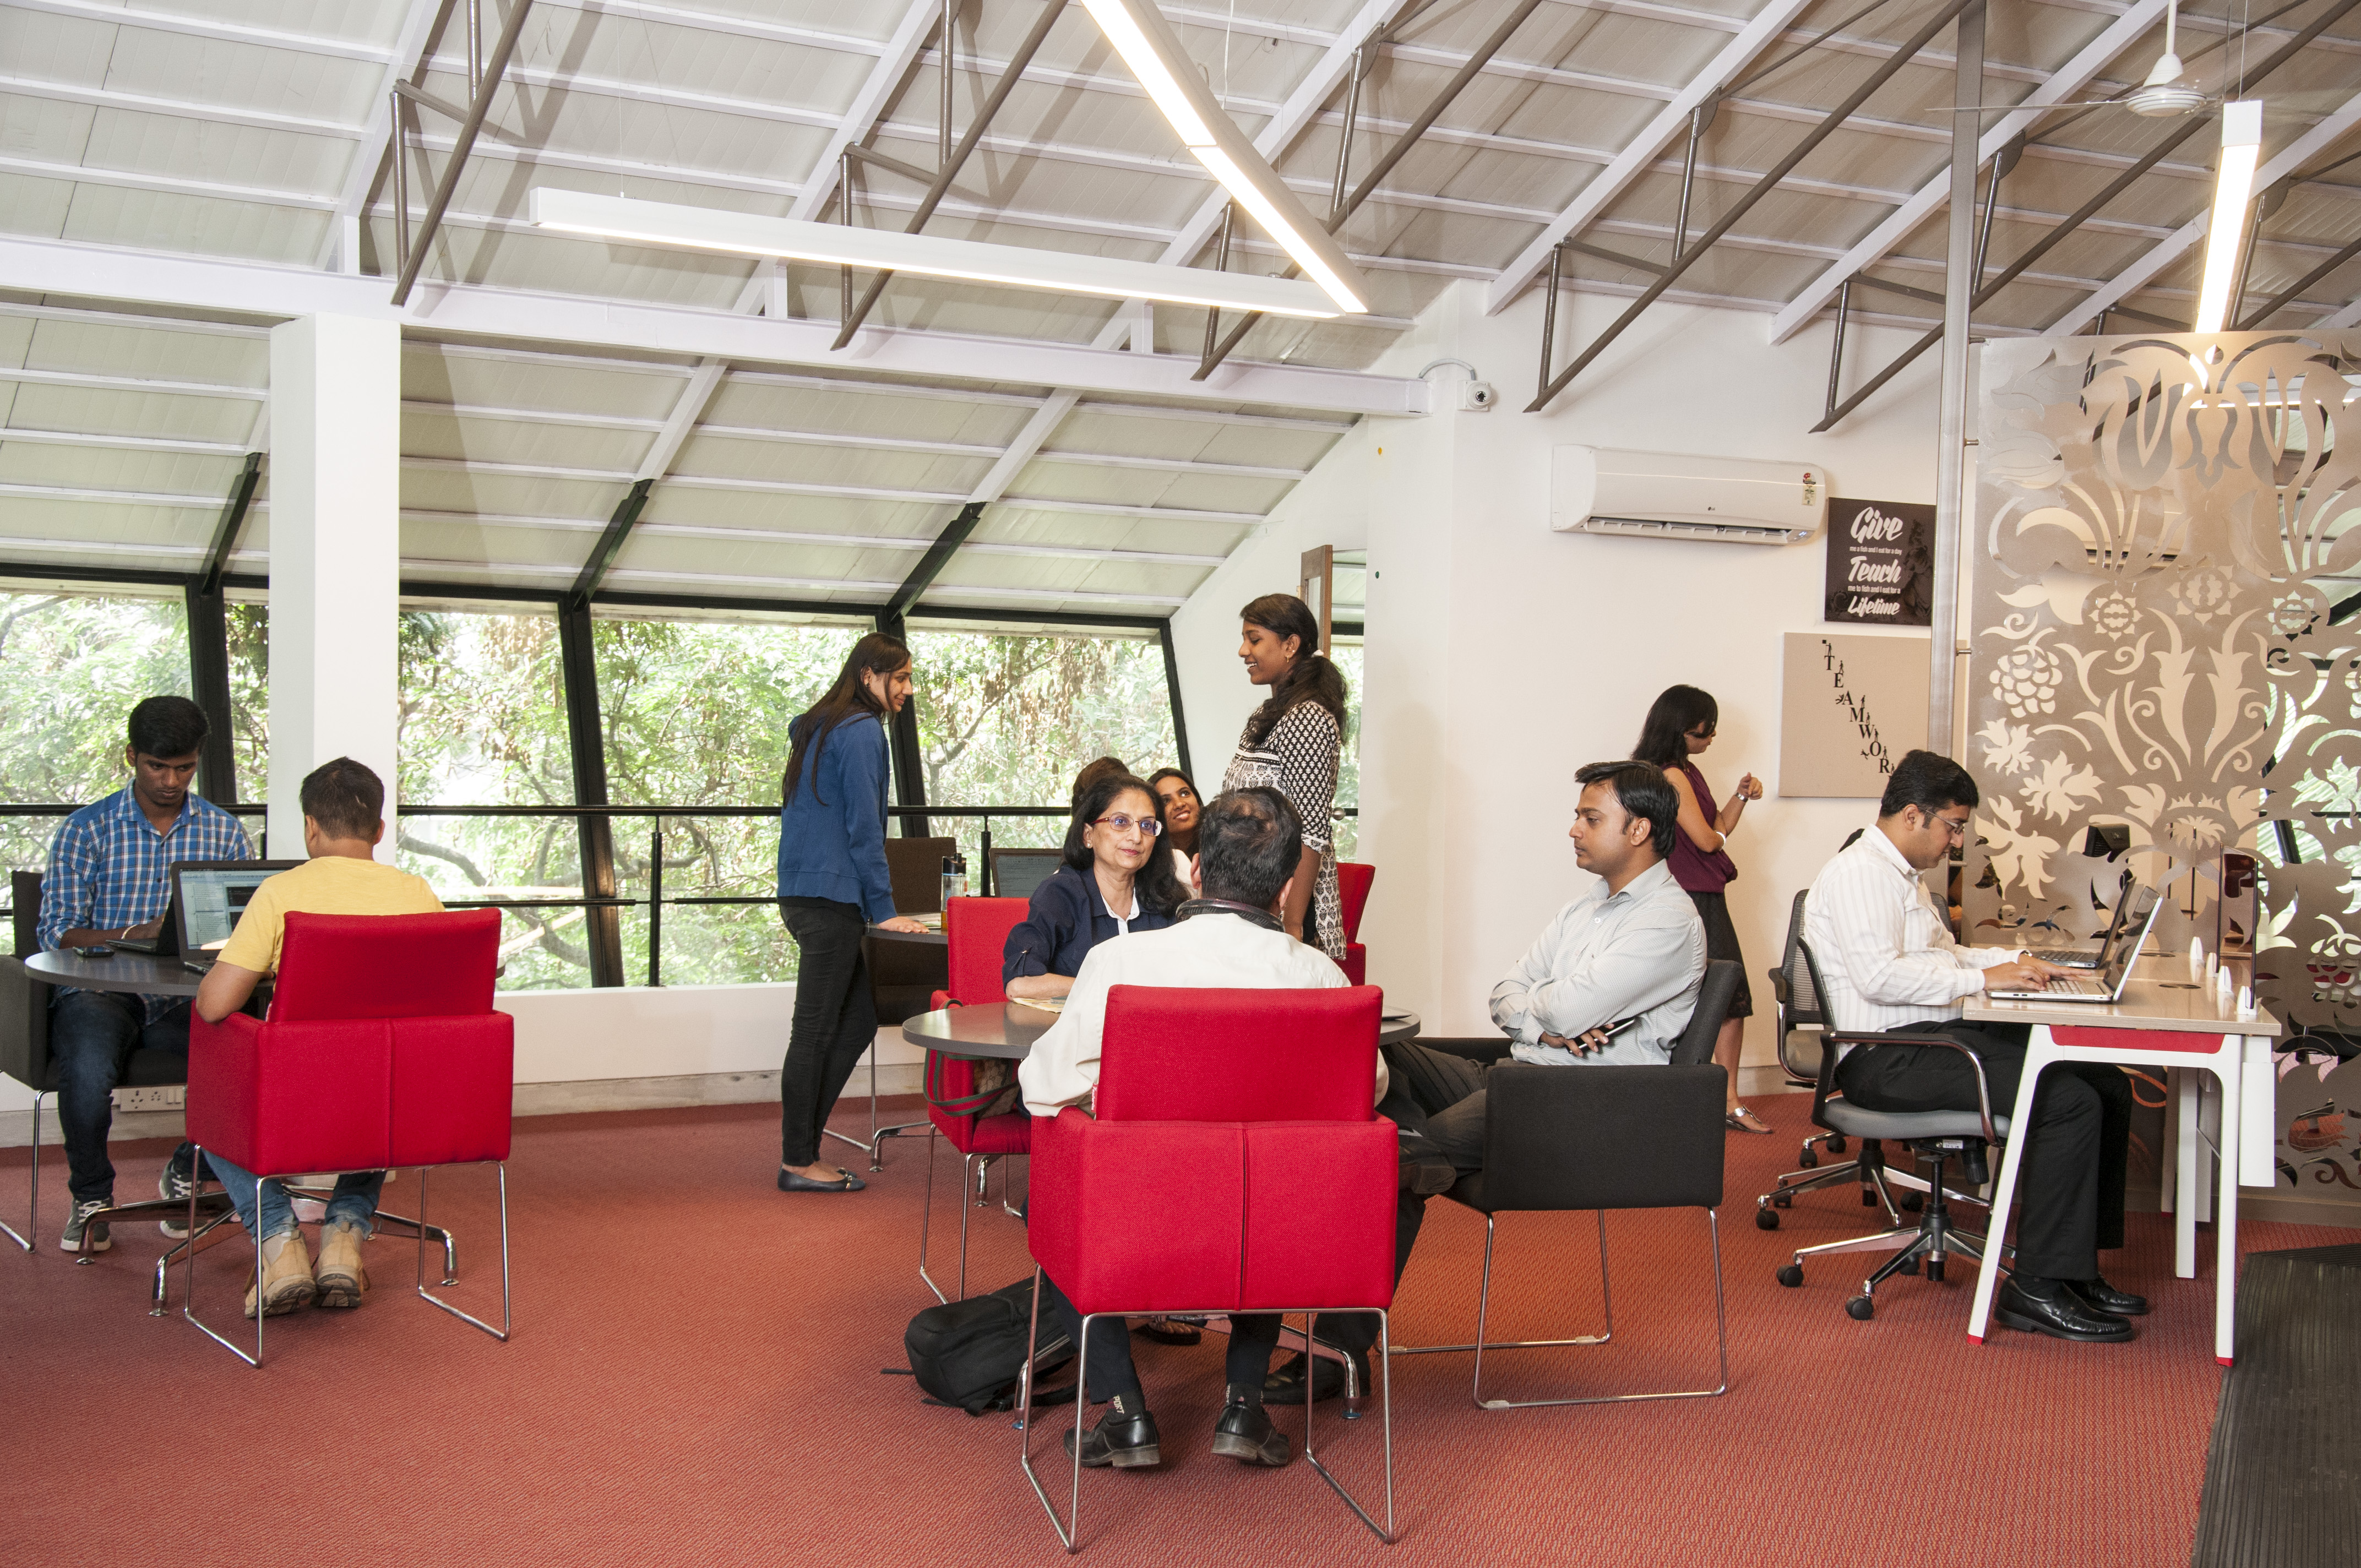 co-working space Evoma